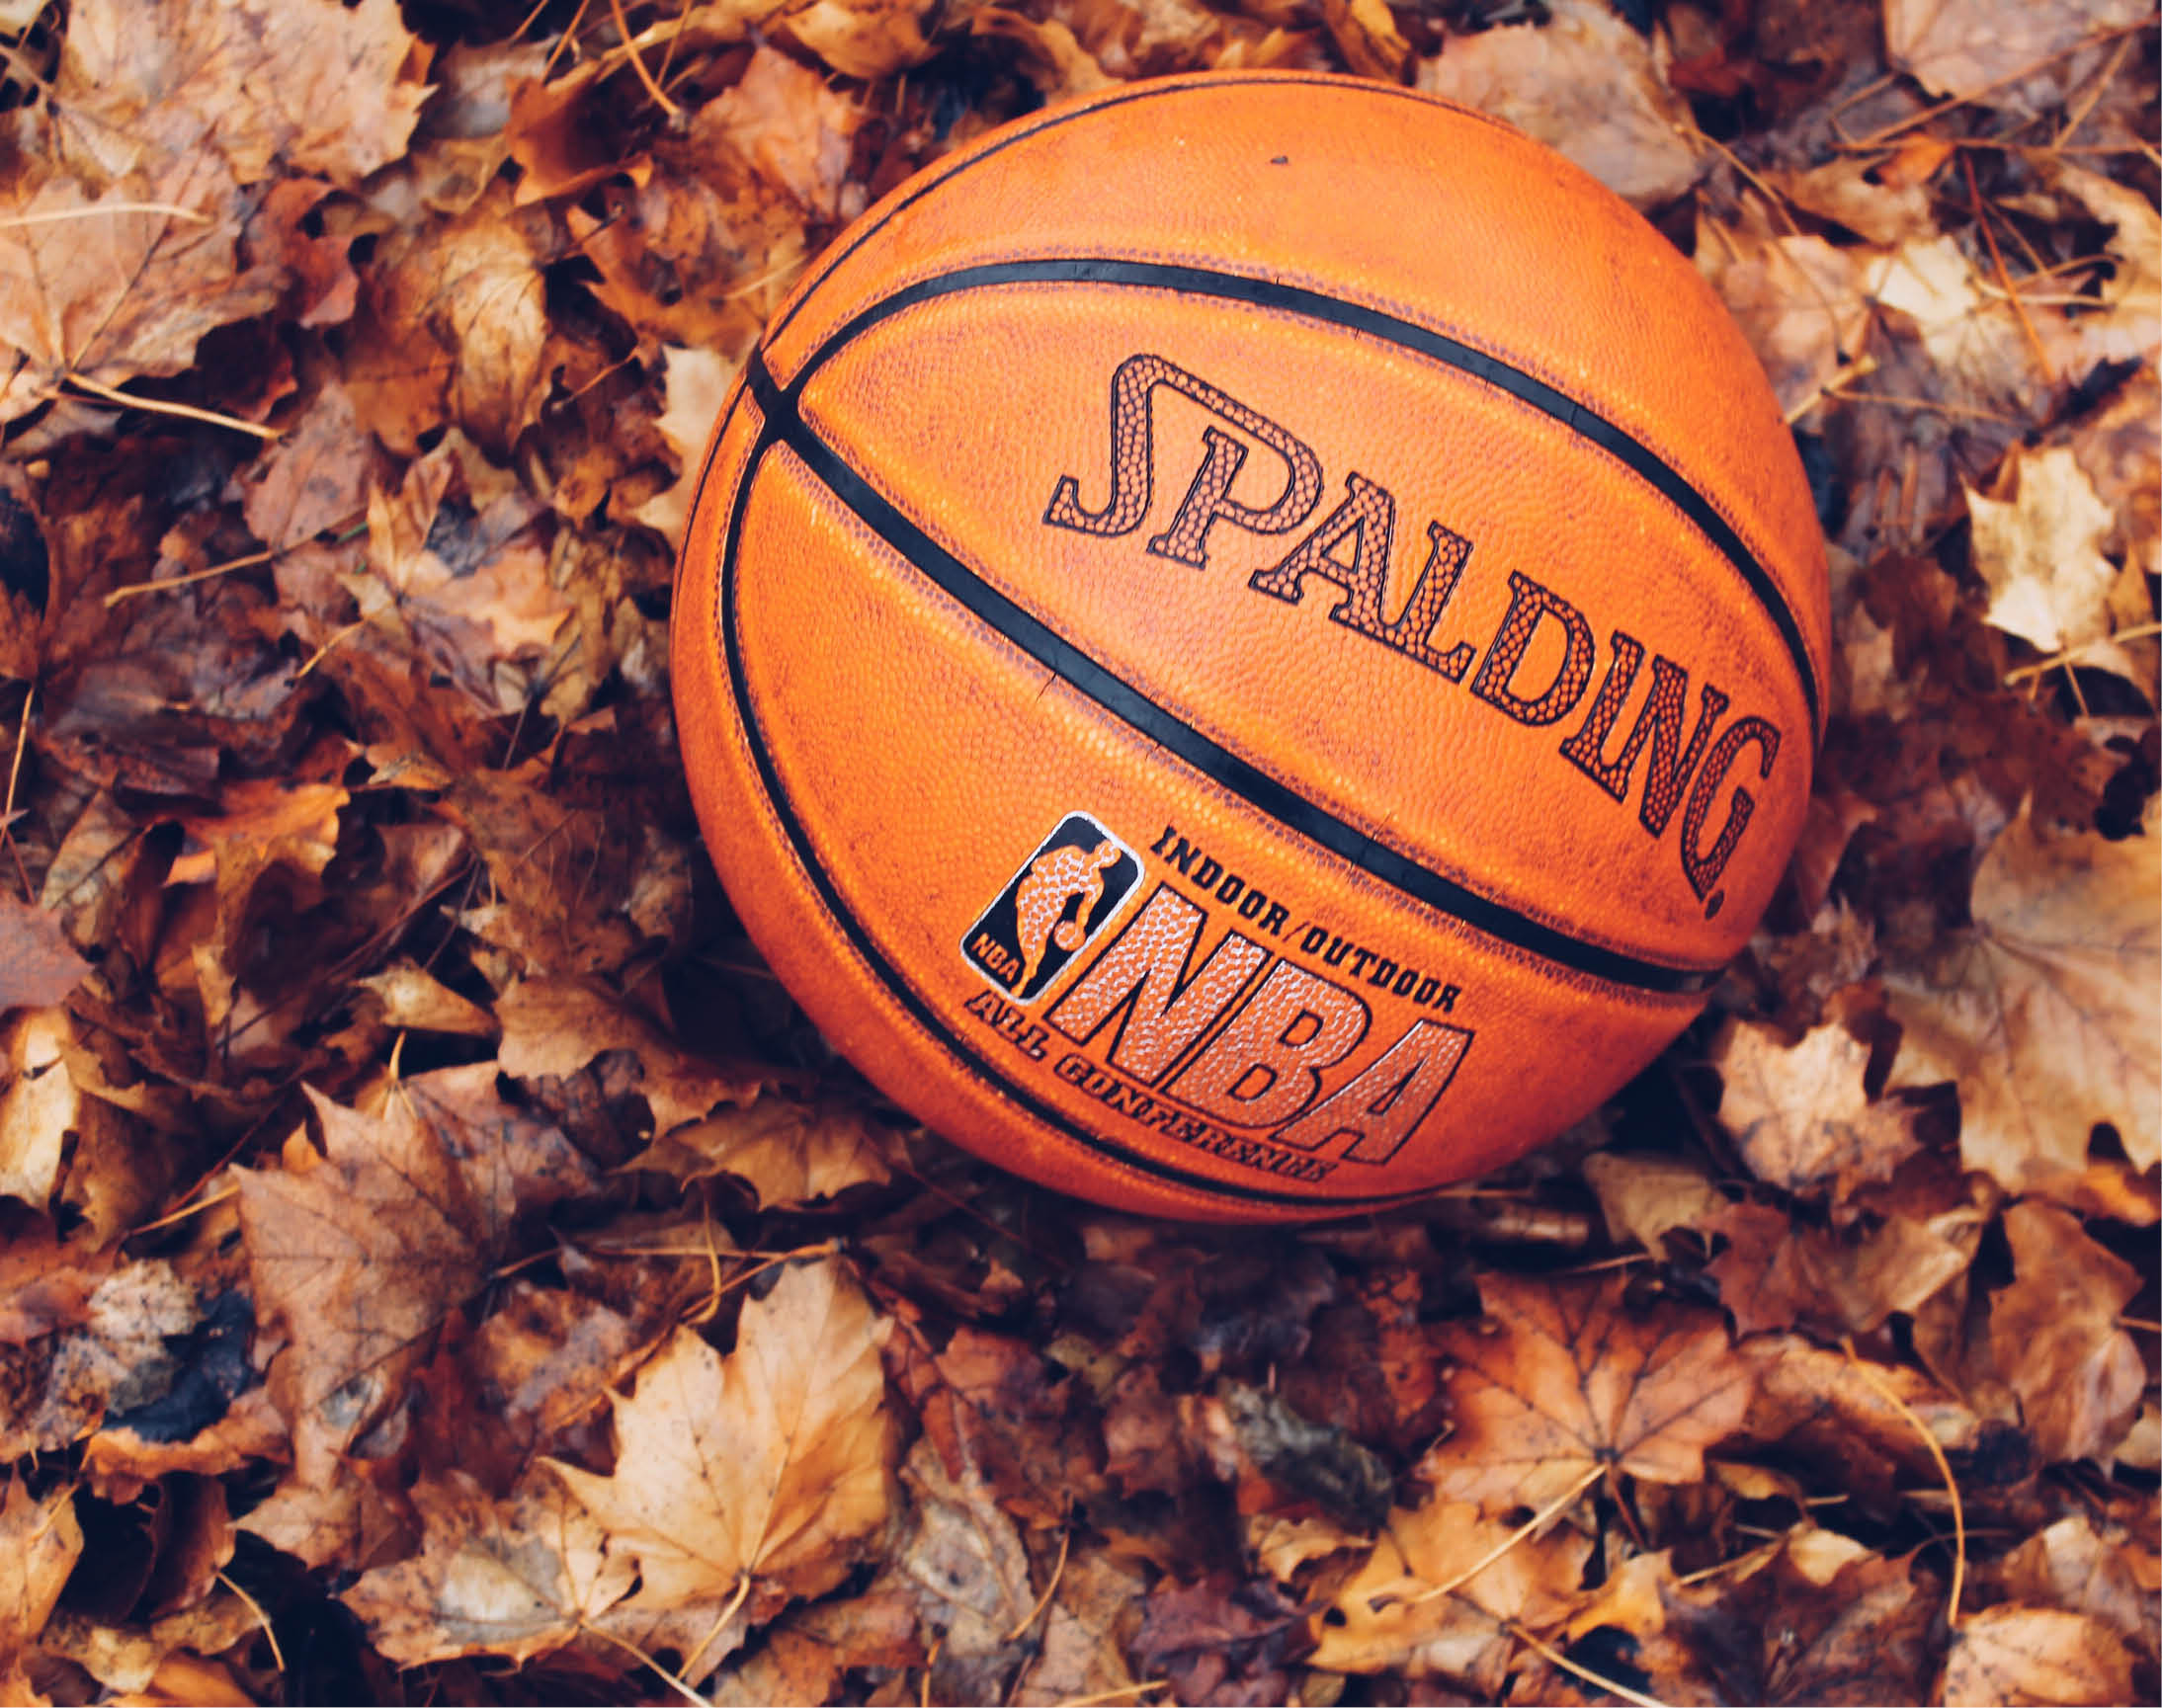 NEWS SMALL Youth Basketball League